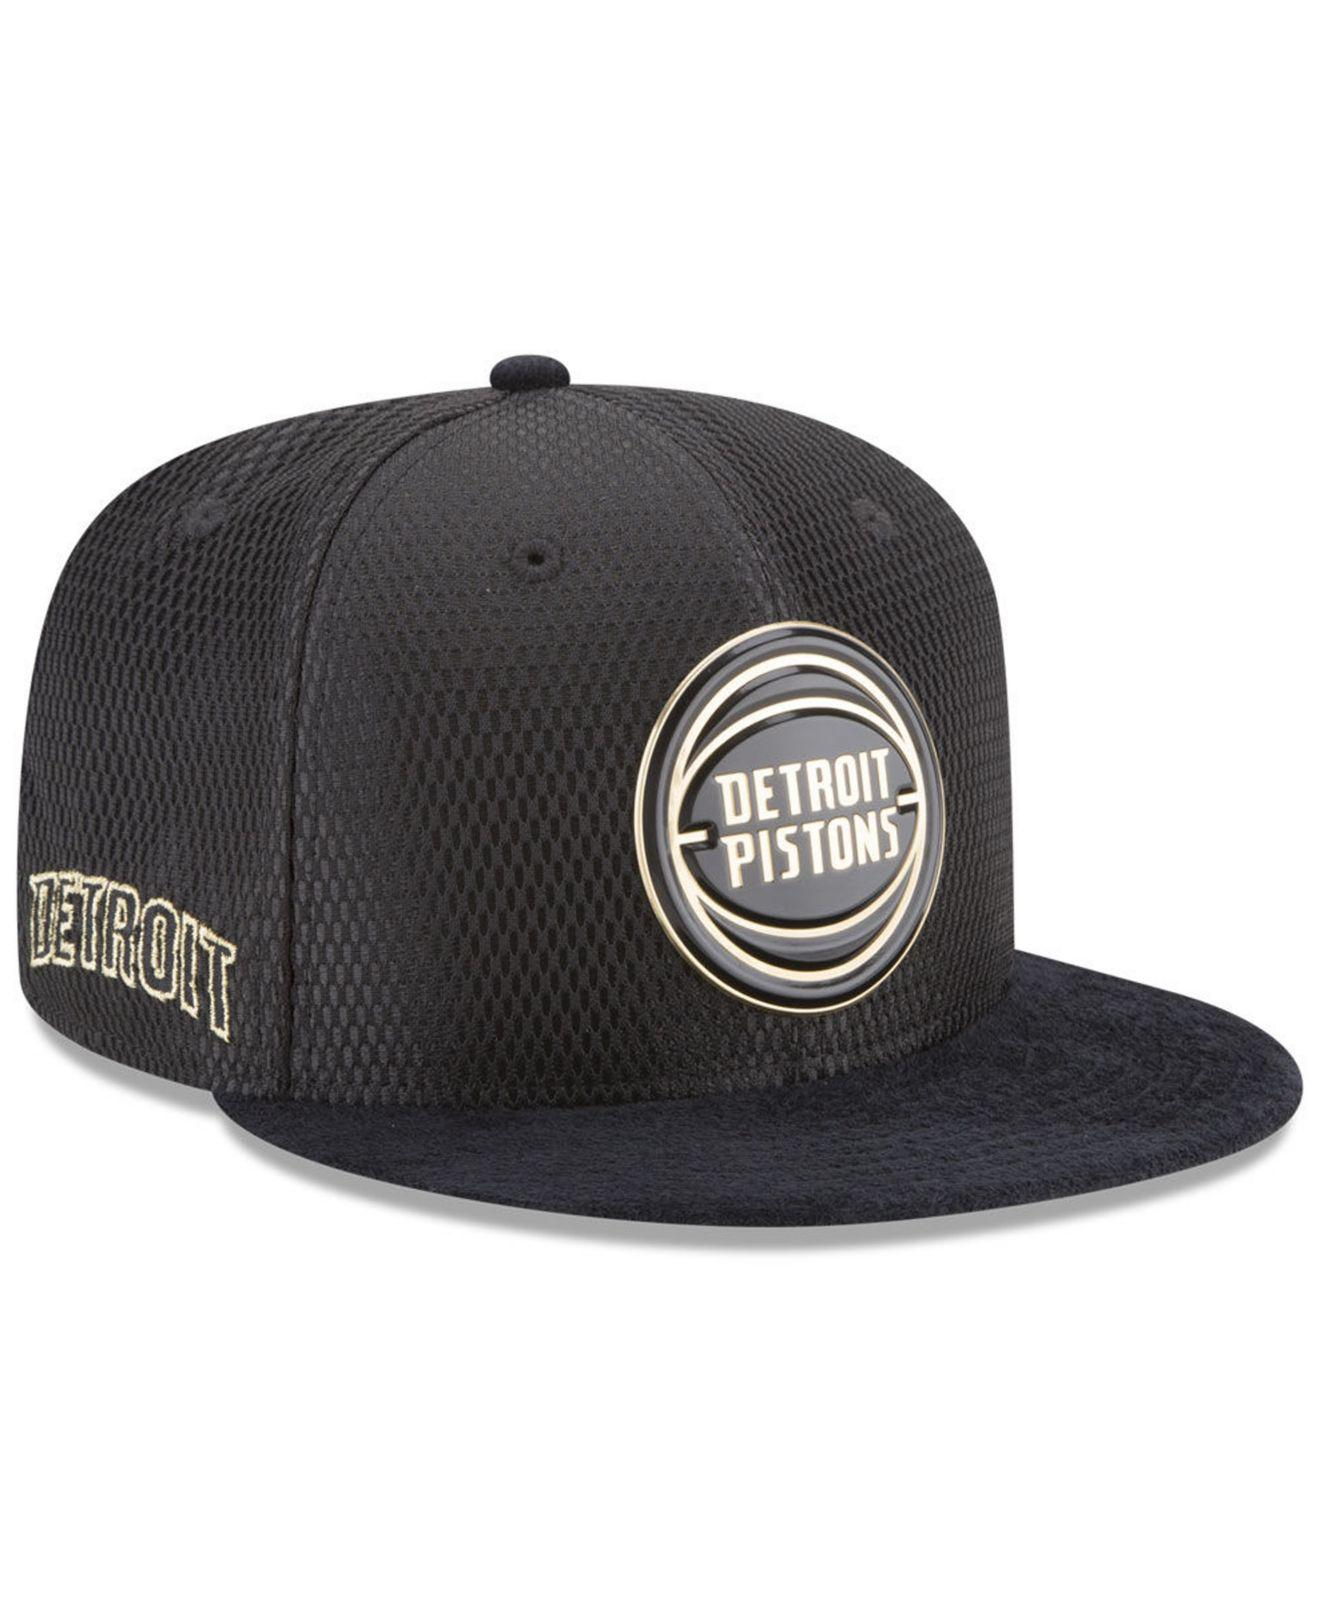 size 40 abf8f e8bad Lyst - KTZ Detroit Pistons On-court Black Gold Collection 9fifty ...